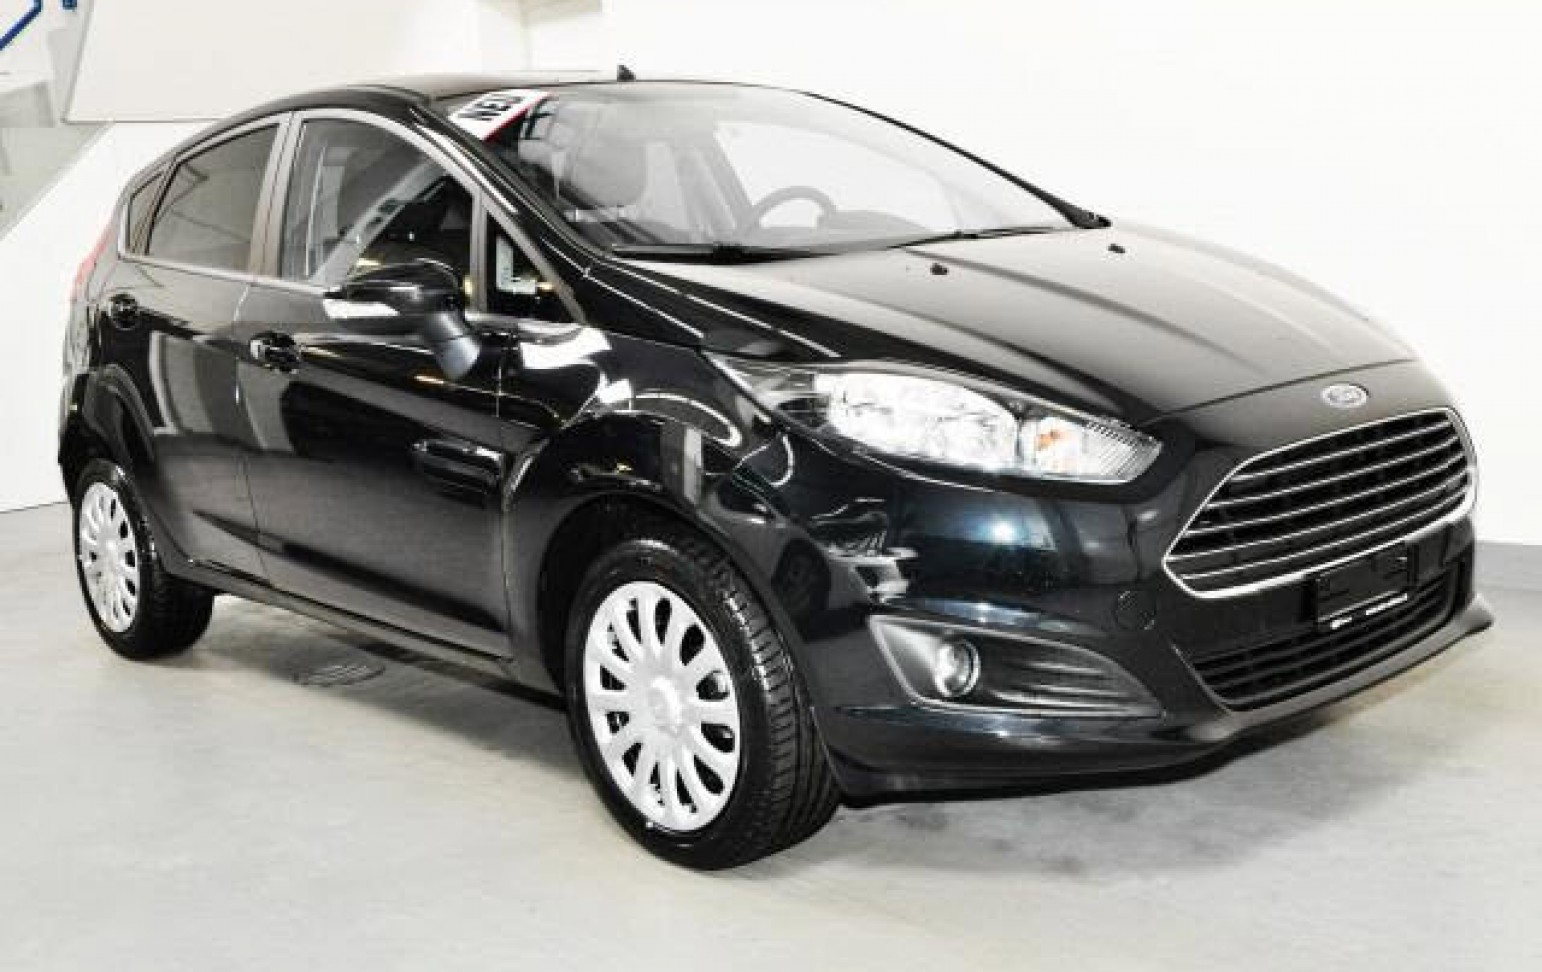 Ford Fiesta 1.25 2014 photo - 8